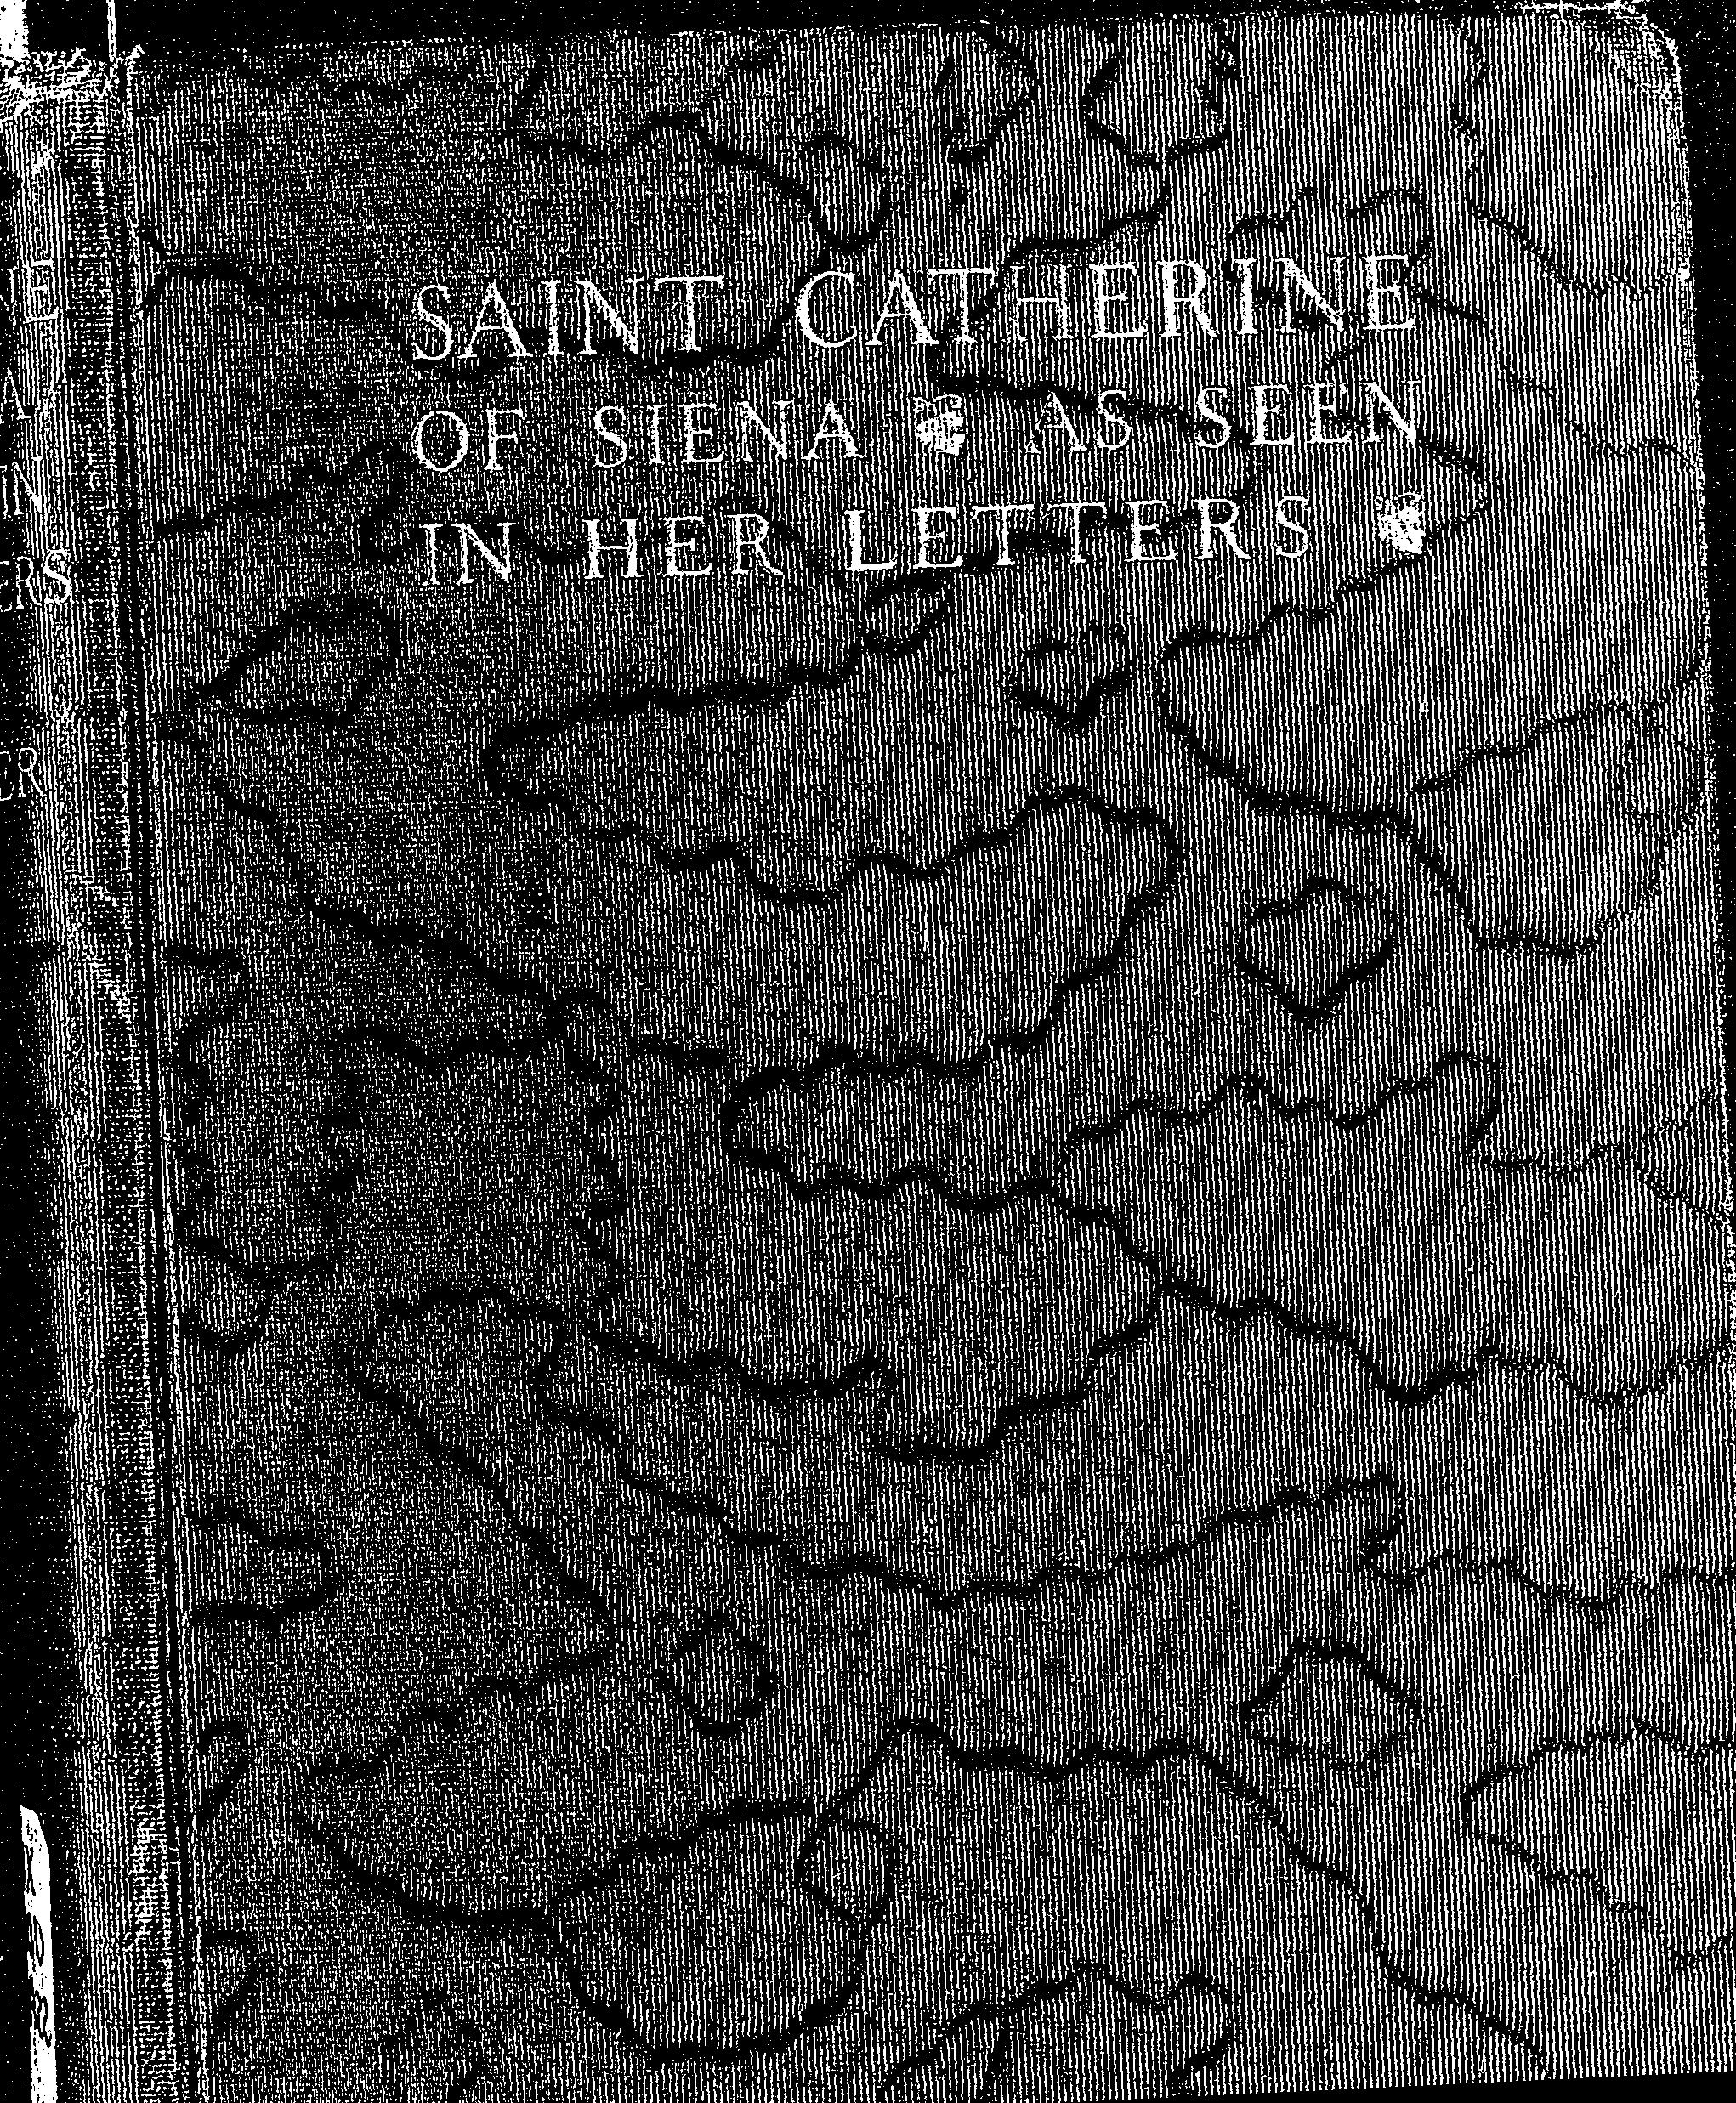 Saint Catherine of Siena as seen in her letters by Catherine of Siena, Saint